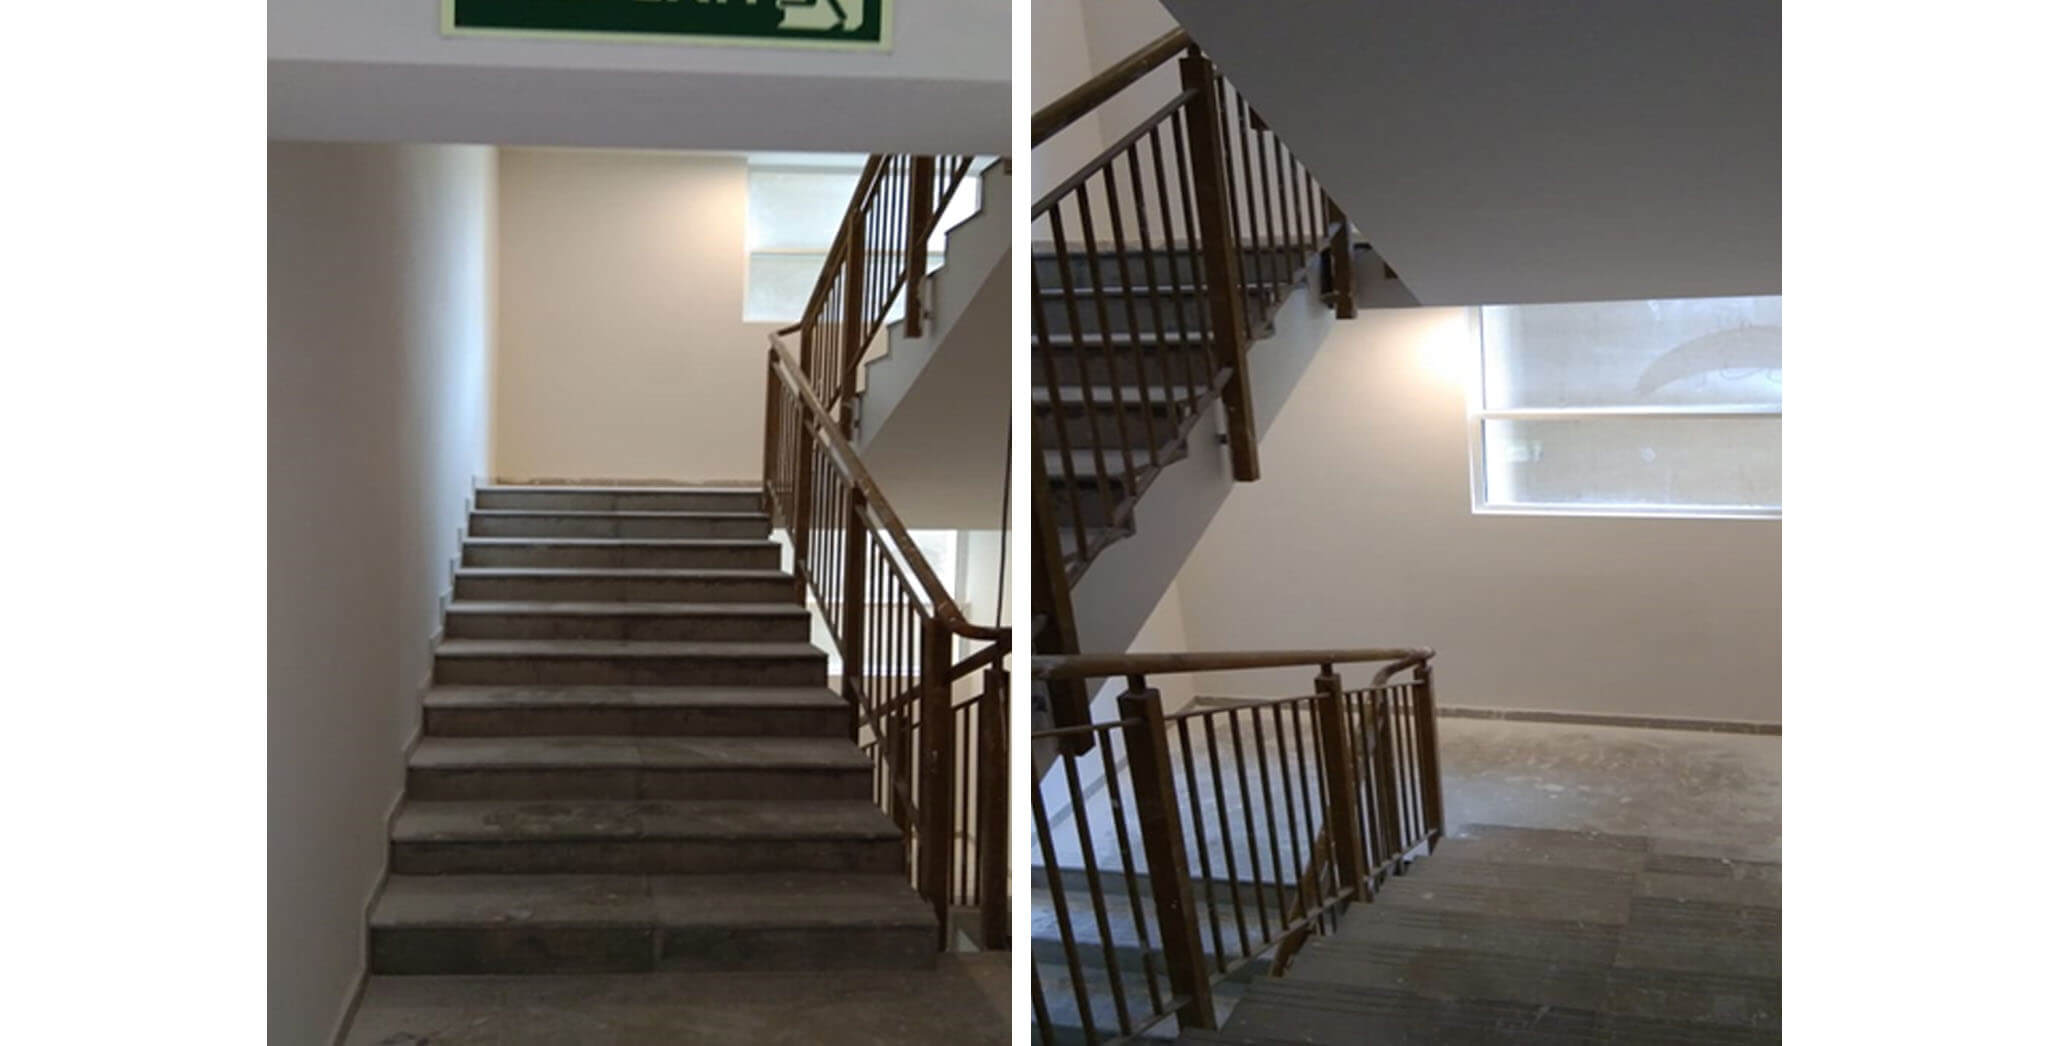 May 2020 - Deodar—D block: Staircase–Final coat painting in progress